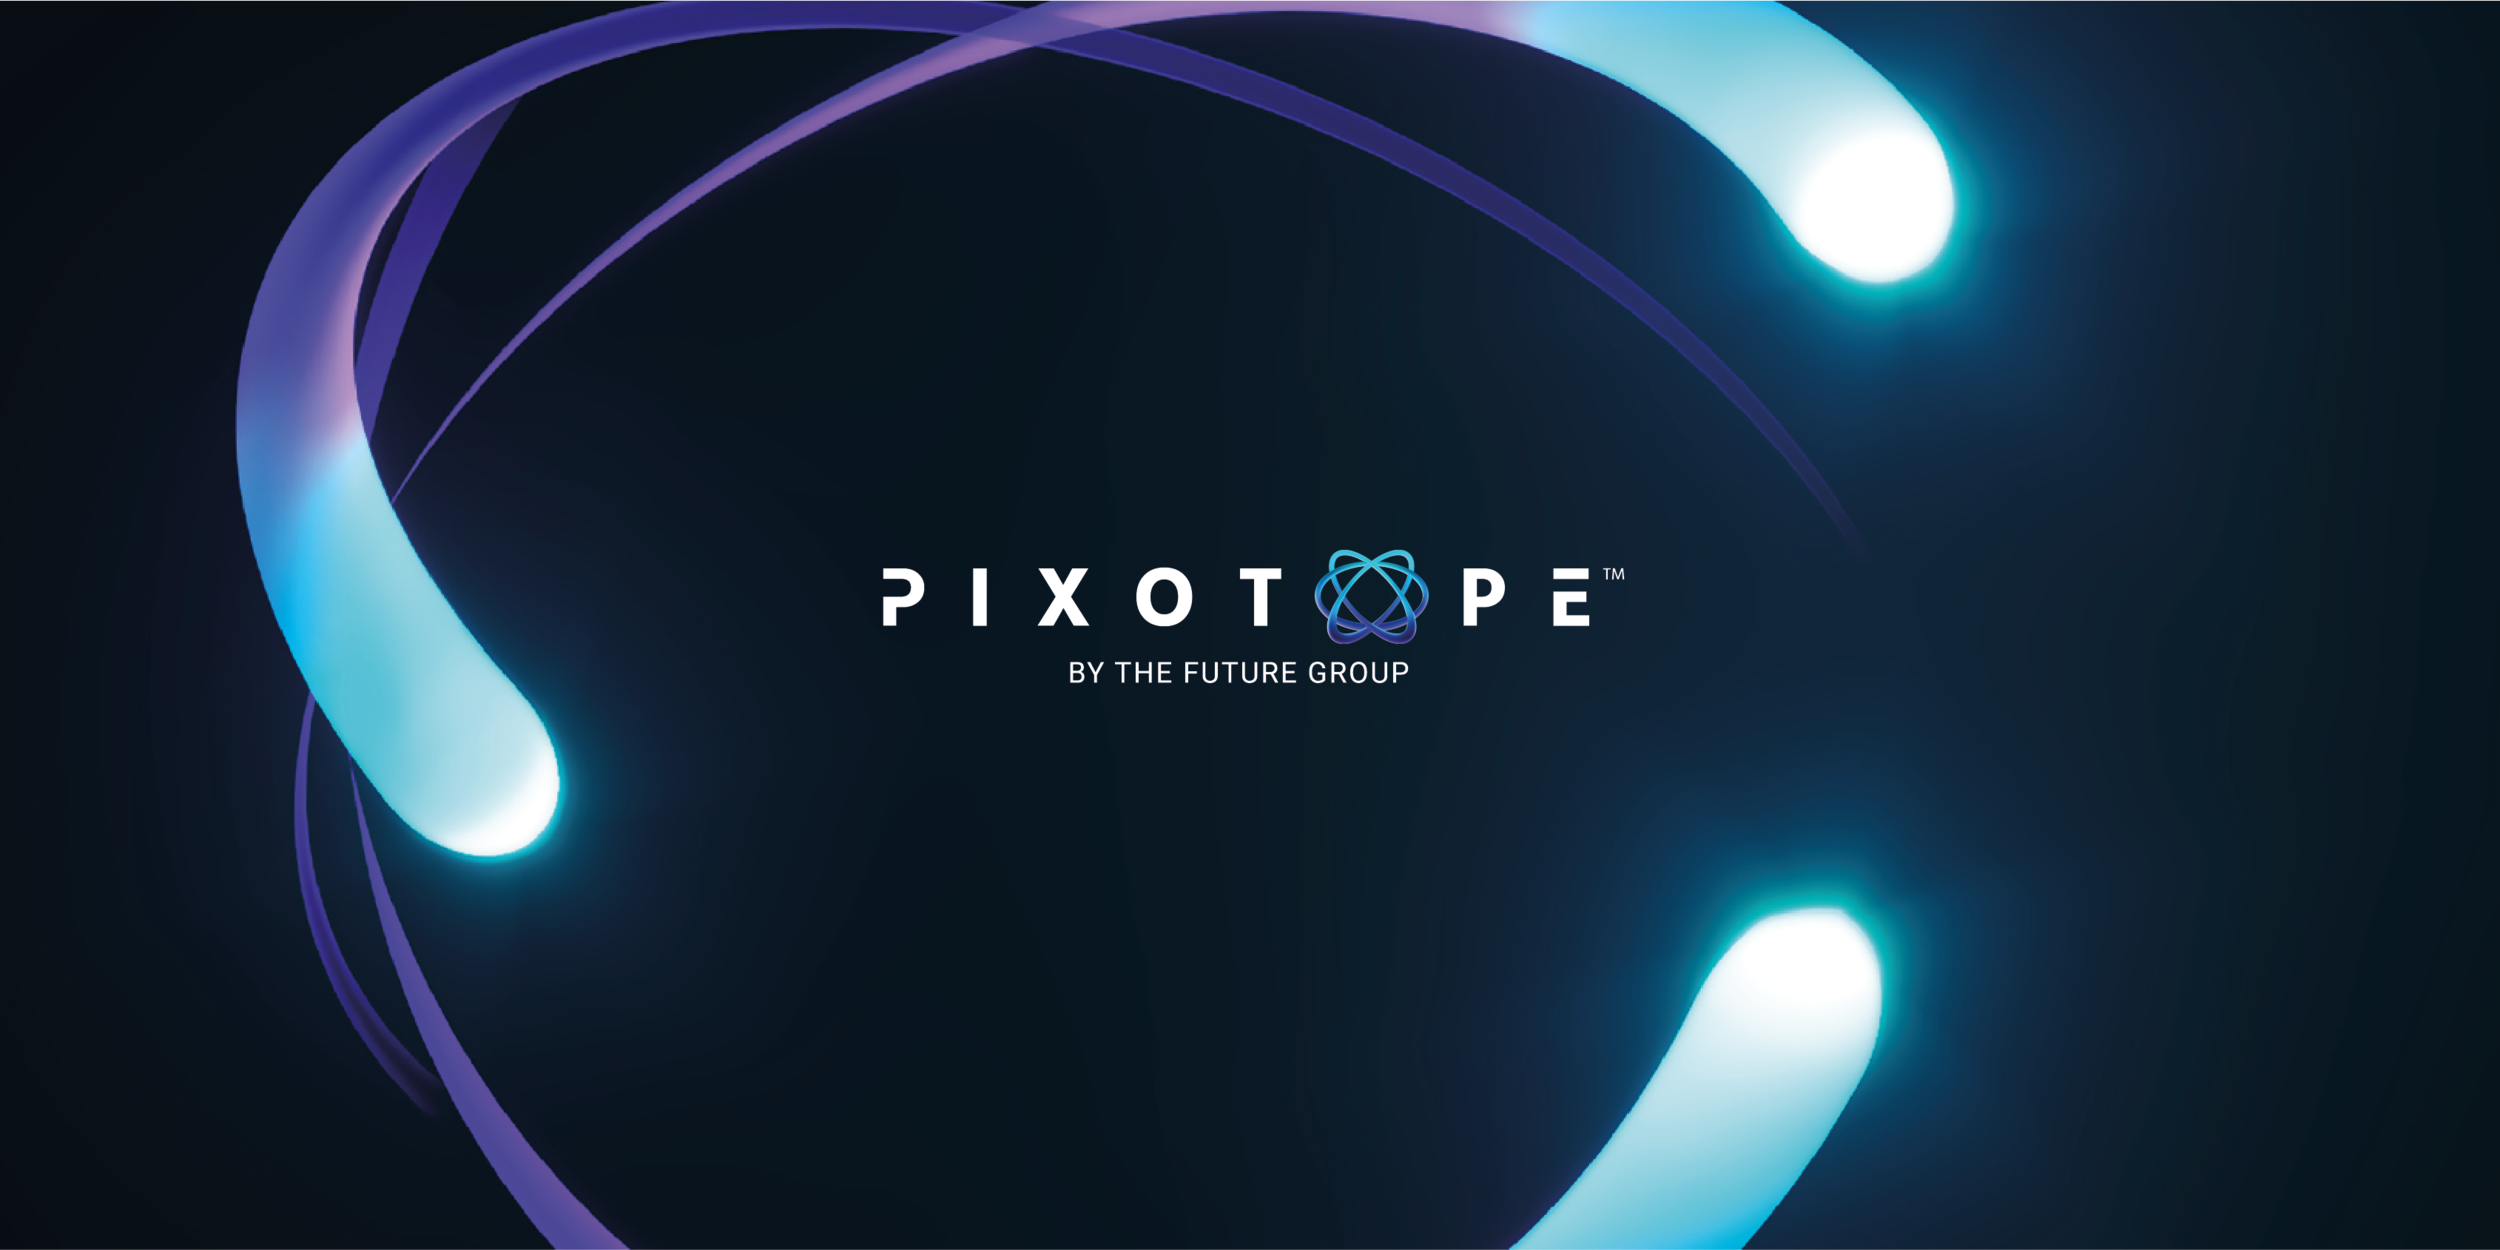 Pixotope-graphic-01.png